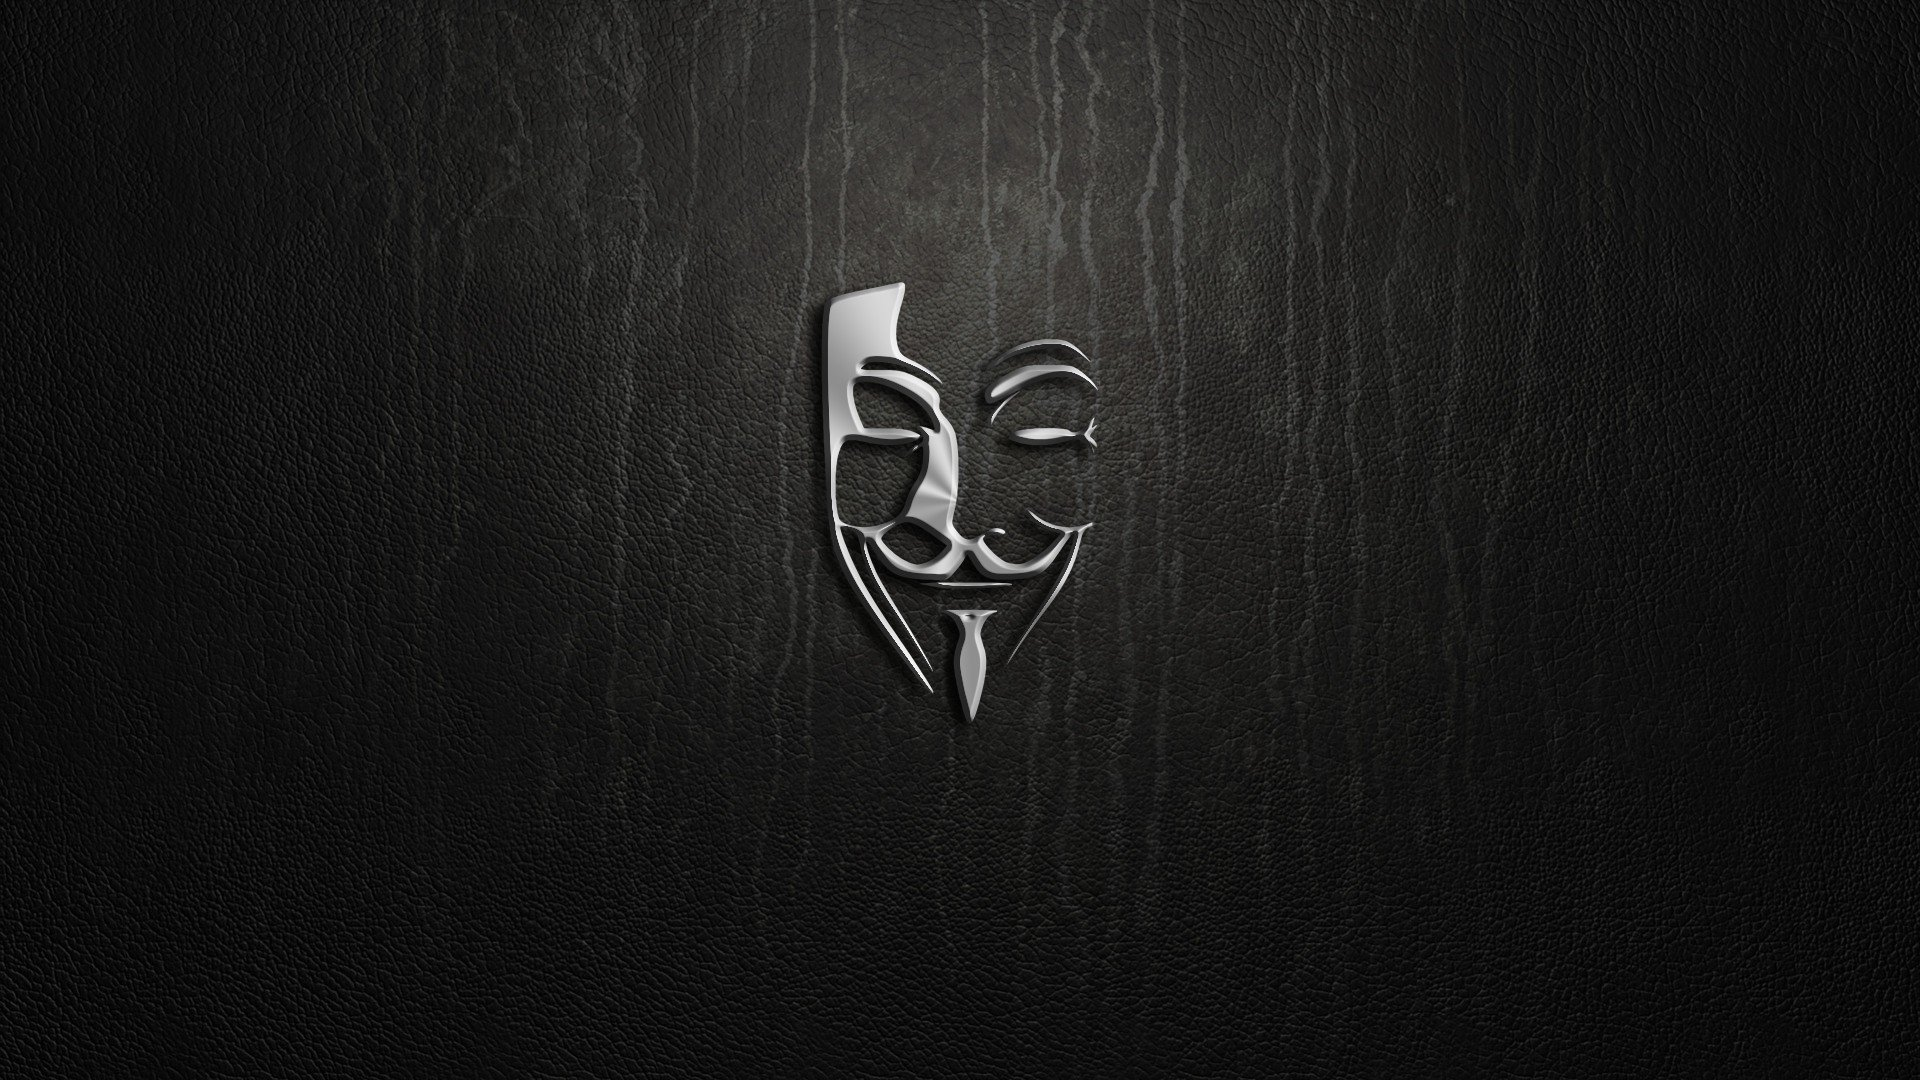 Hacking Hackers Hd Wallpapers Desktop And Mobile Images